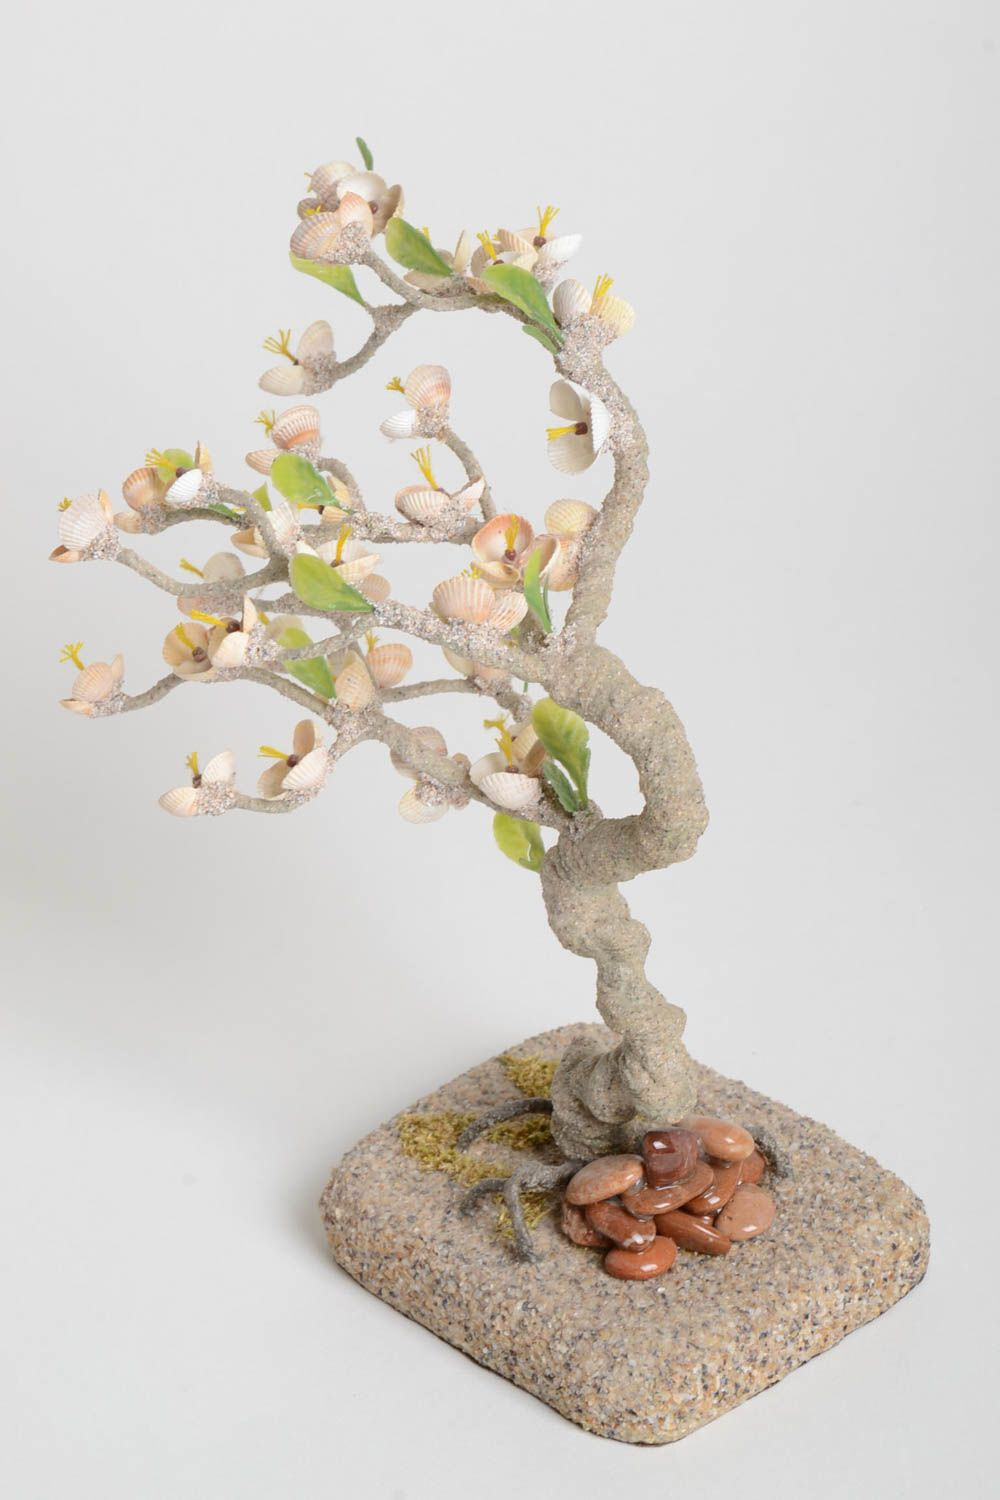 Handmade tree with flowers table decor gift ideas artificial tree home decor photo 4